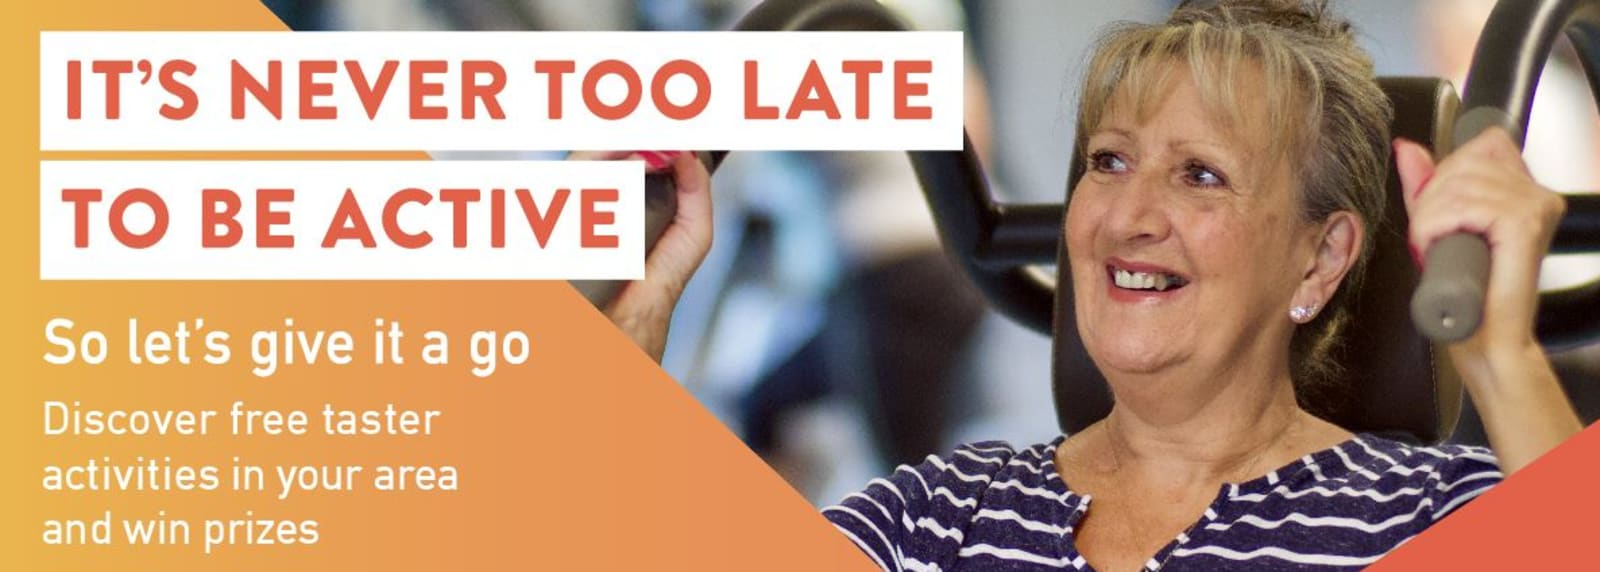 It's Never Too Late To Get Active